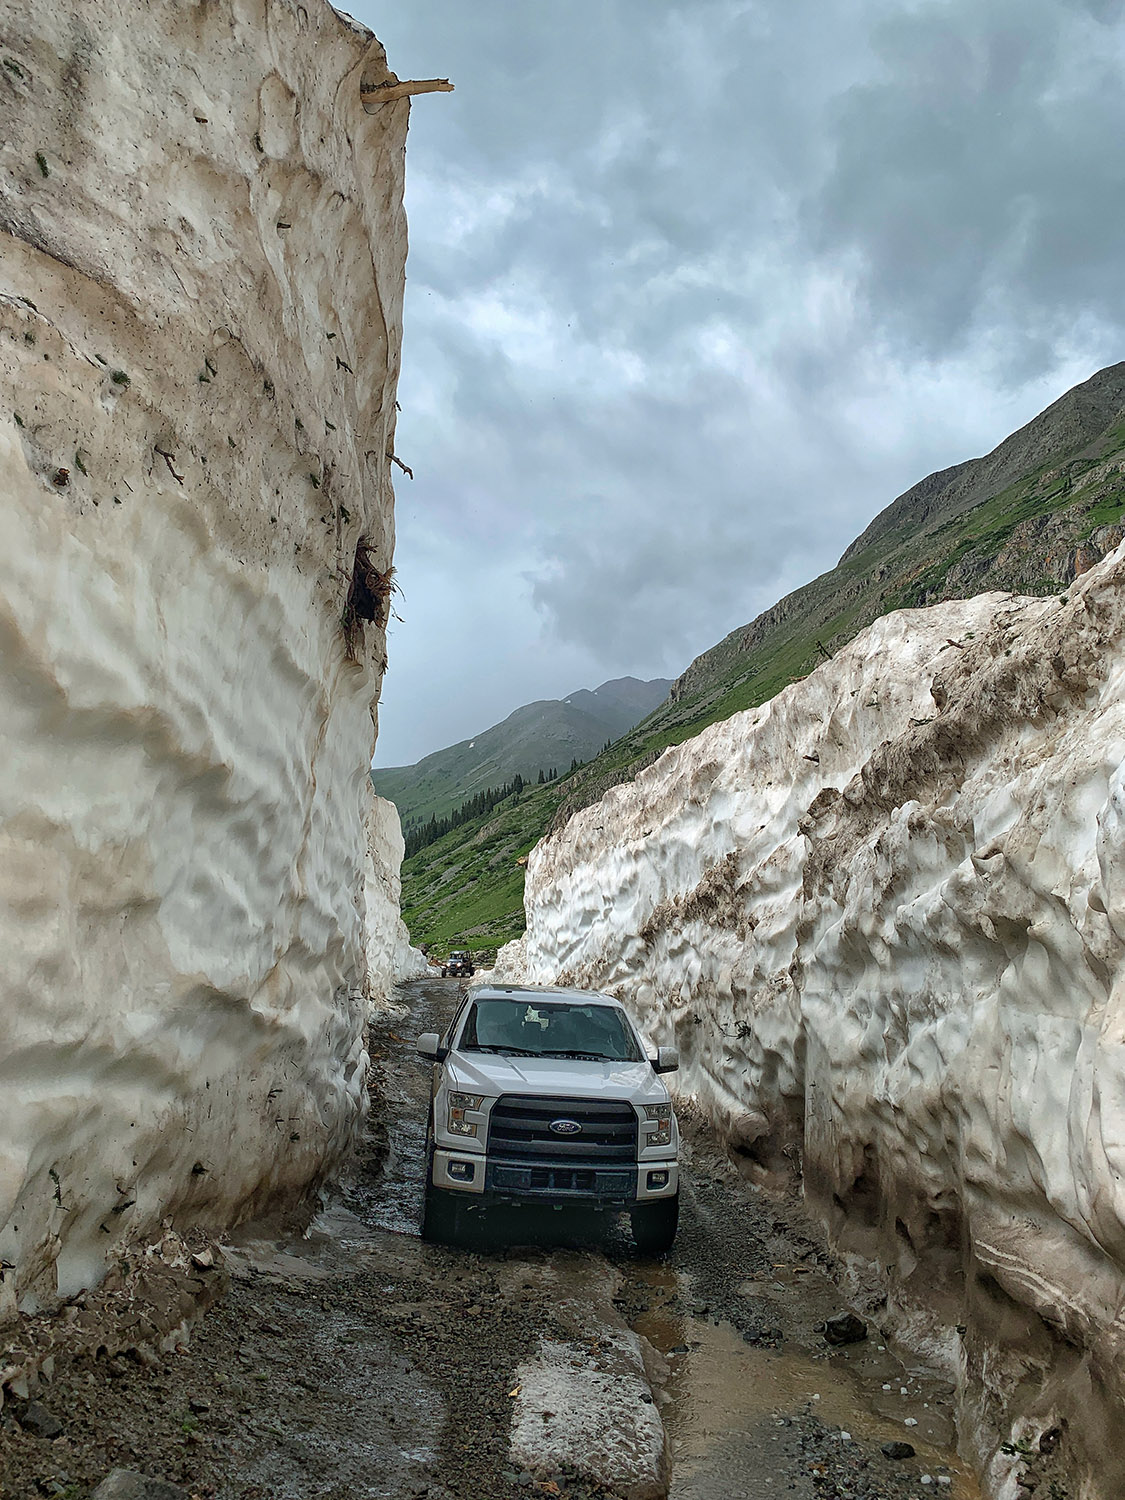 The San Juan Mountains experienced a snowy winter and Betty stopped to pose in a narrow cut through a massive avalanche debris flow en route to Animas Forks ghost town outside Silverton, Colorado.